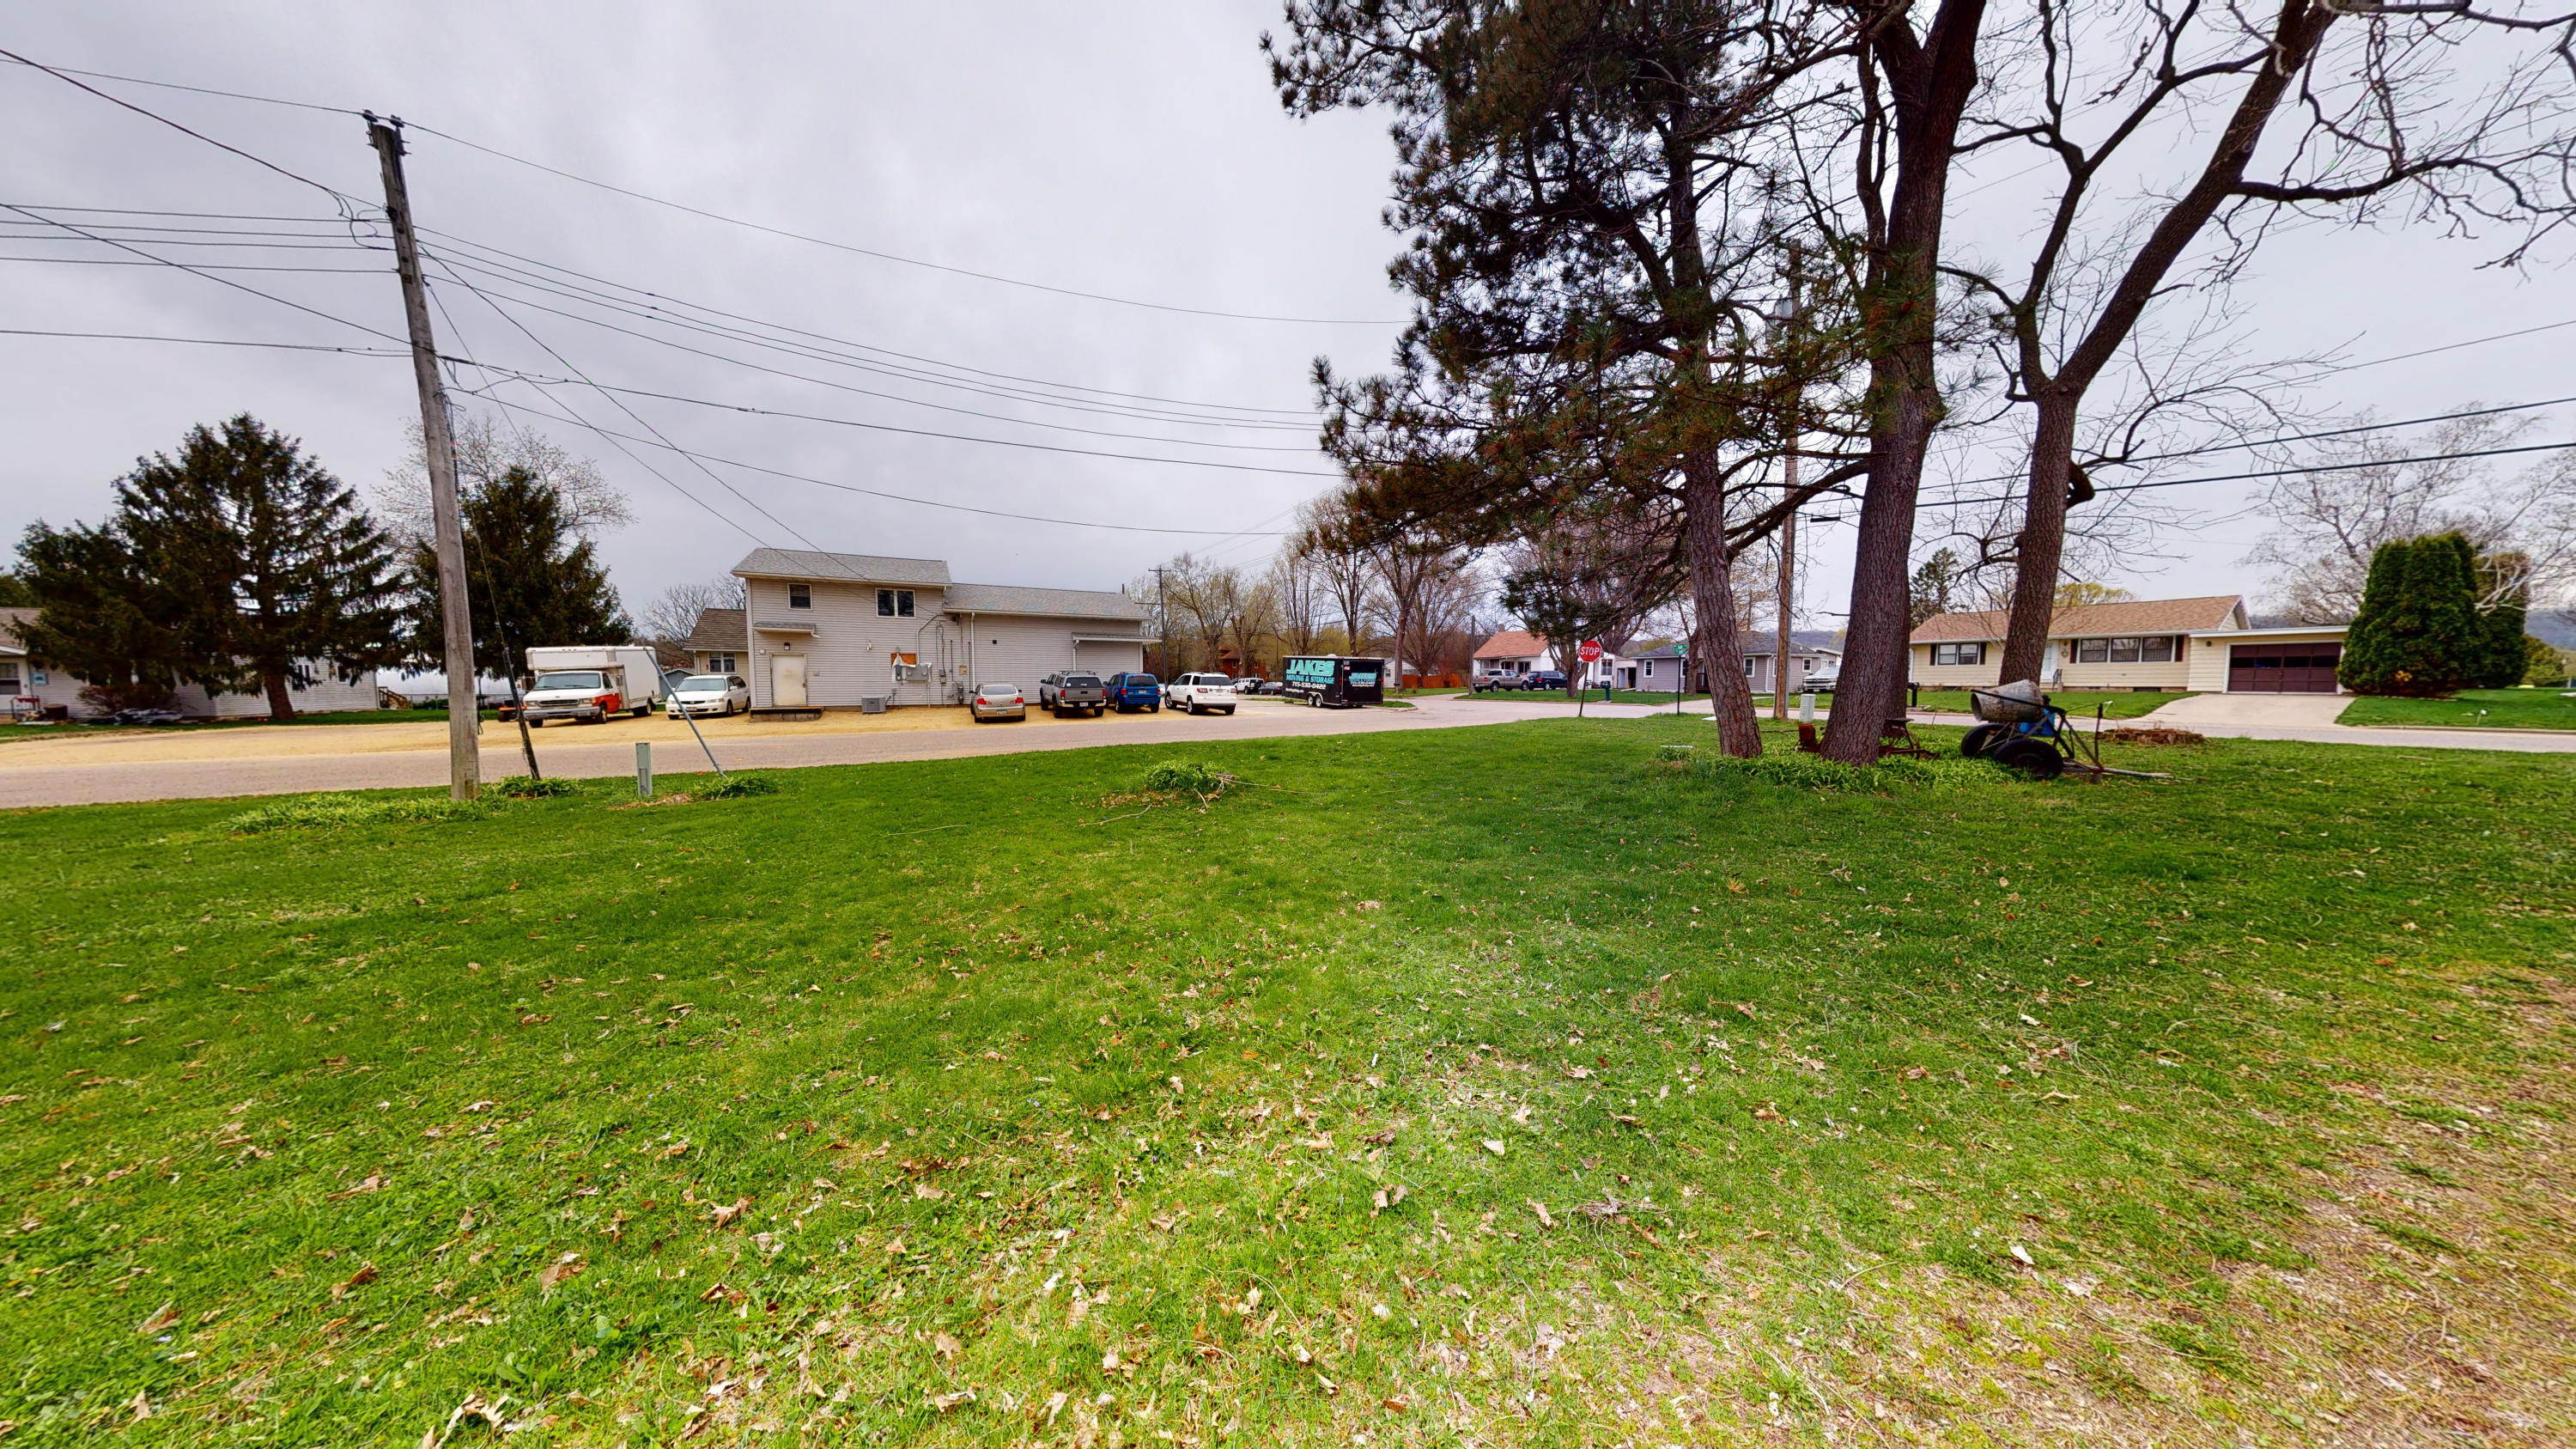 Lot 1 10th St, Galesville, Wisconsin 54630, ,Vacant Land,For Sale,10th St,1676617